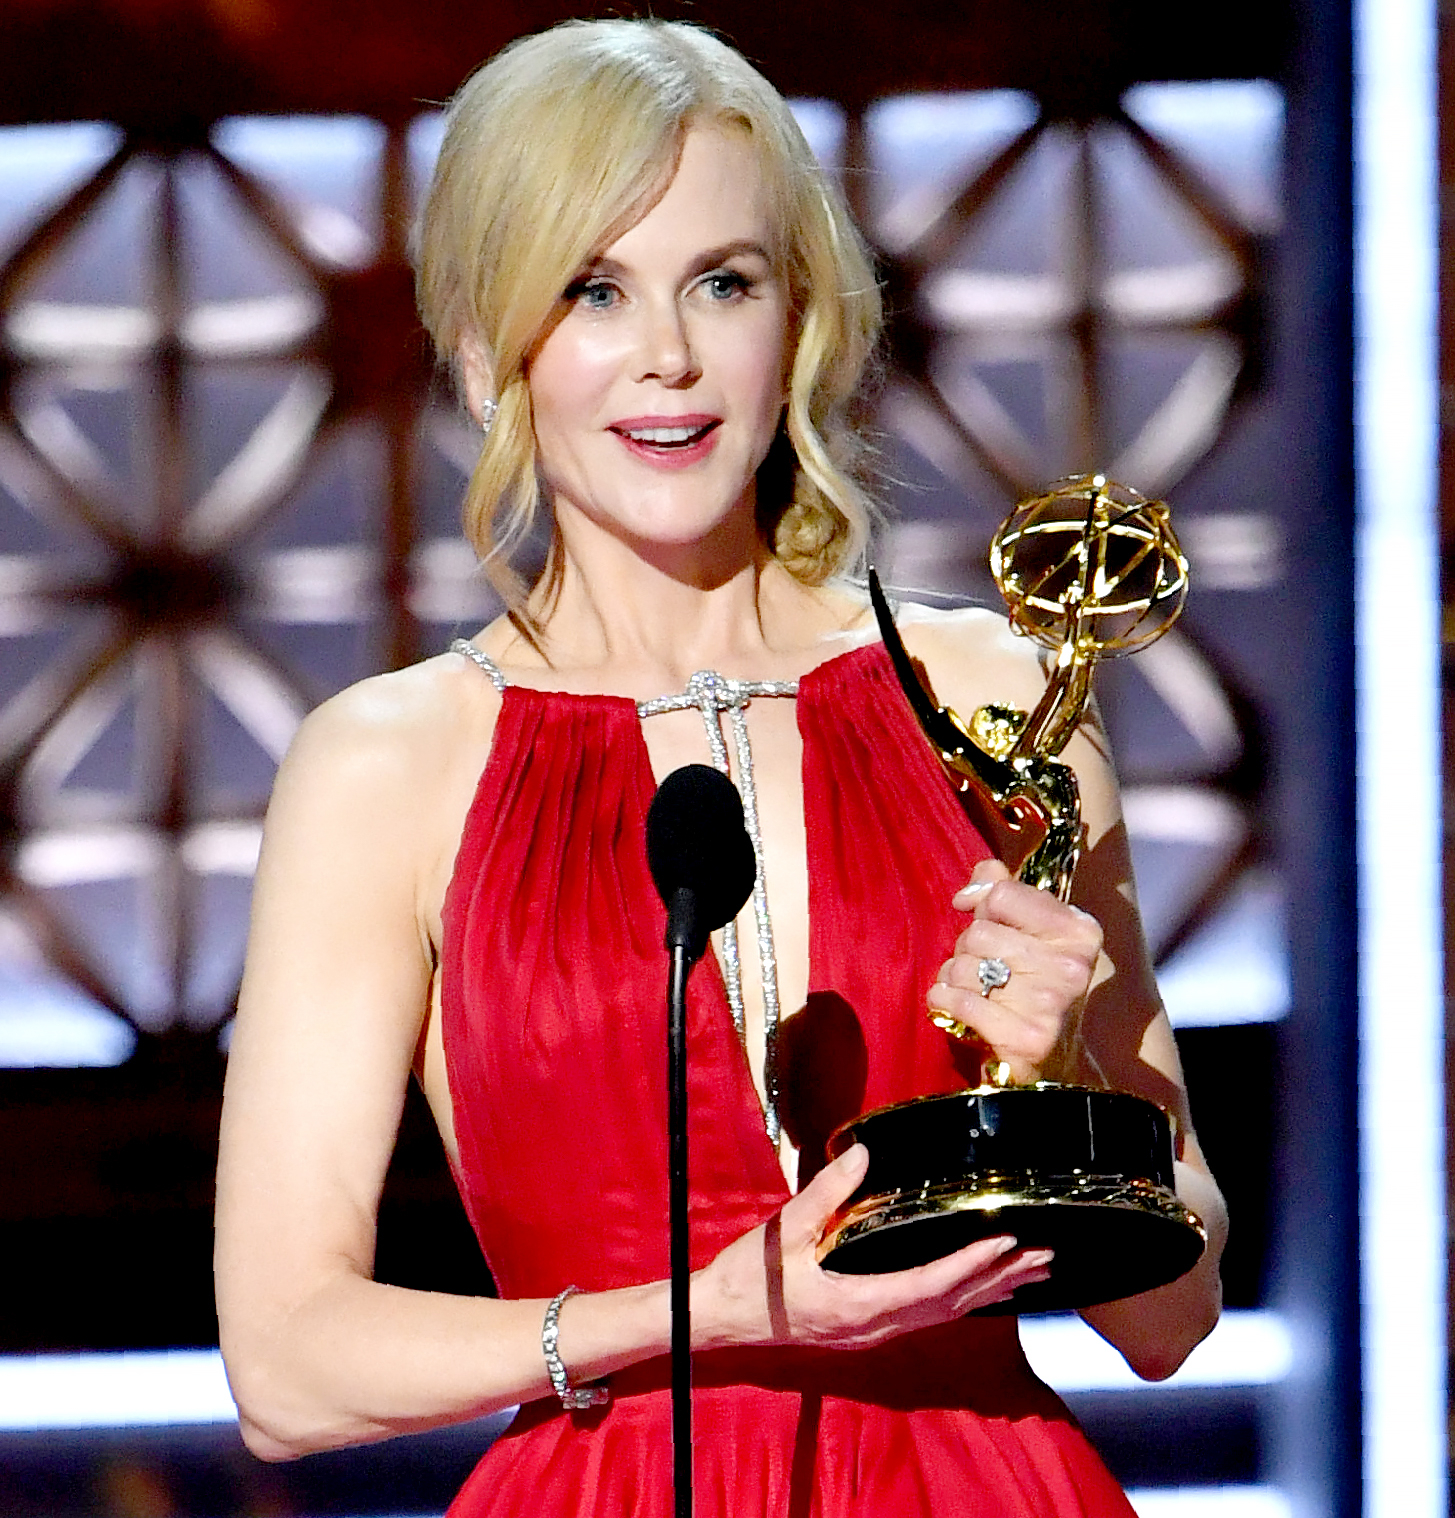 """ptember 17, 2017 in Los Angeles, California. / ANicole Kidman accepts the award for Outstanding Lead Actress in a Limited Series or Movie for """"Big Little Lies"""" onstage during the 69th Emmy Awards at the Microsoft Theatre on September 17, 2017 in Los Angeles, California."""